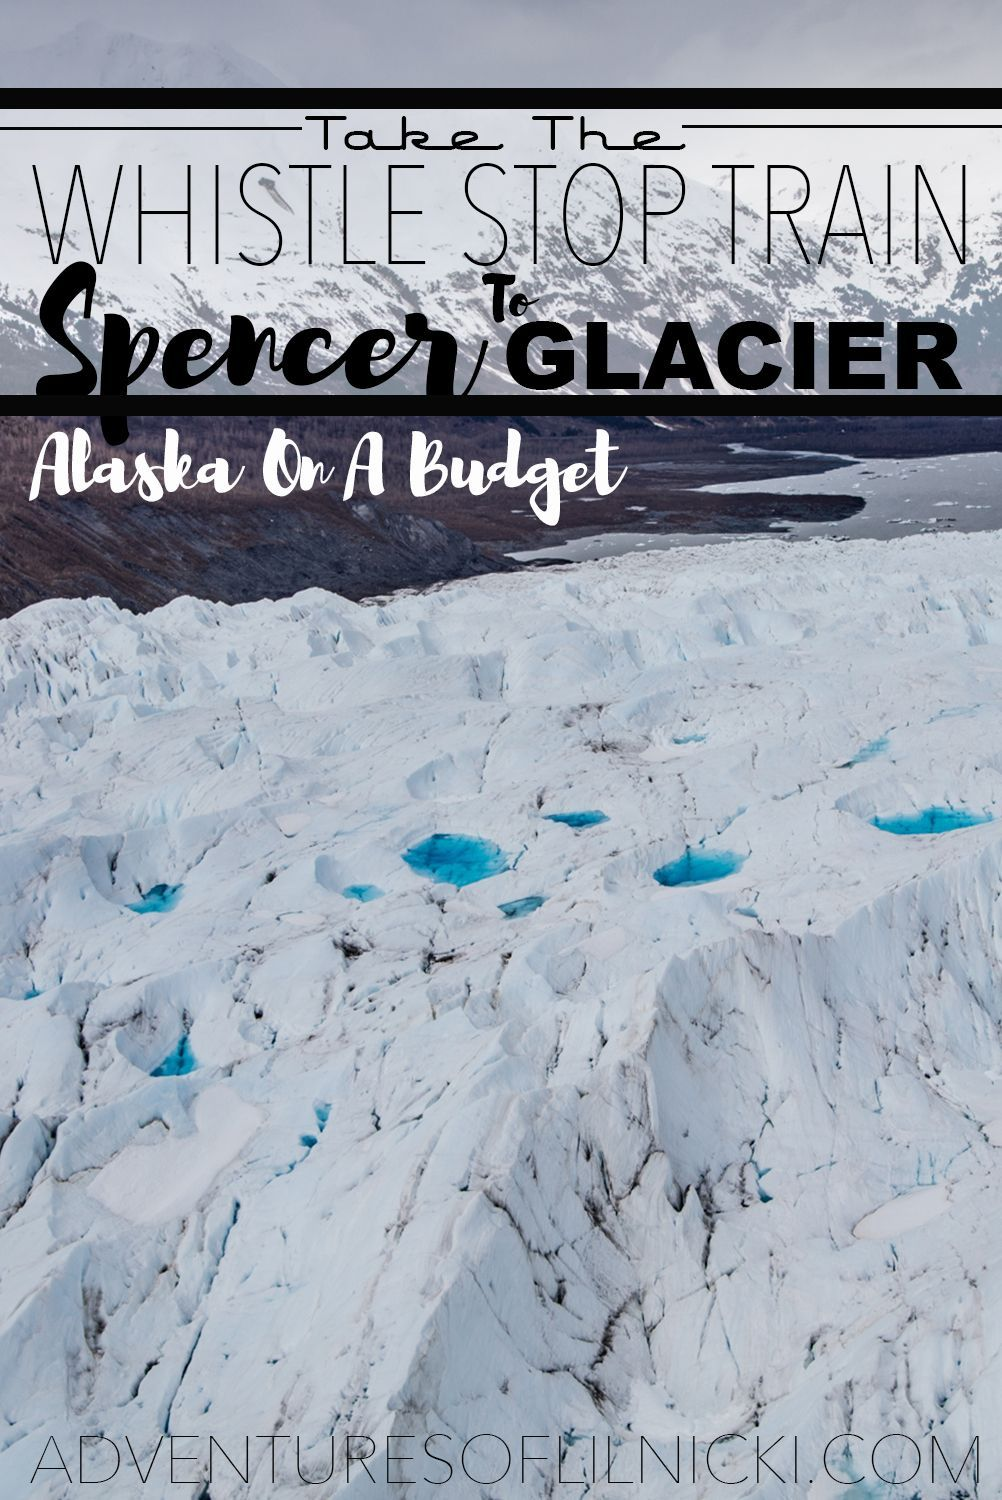 Want to visit Spencer Glacier just outside of Anchorage